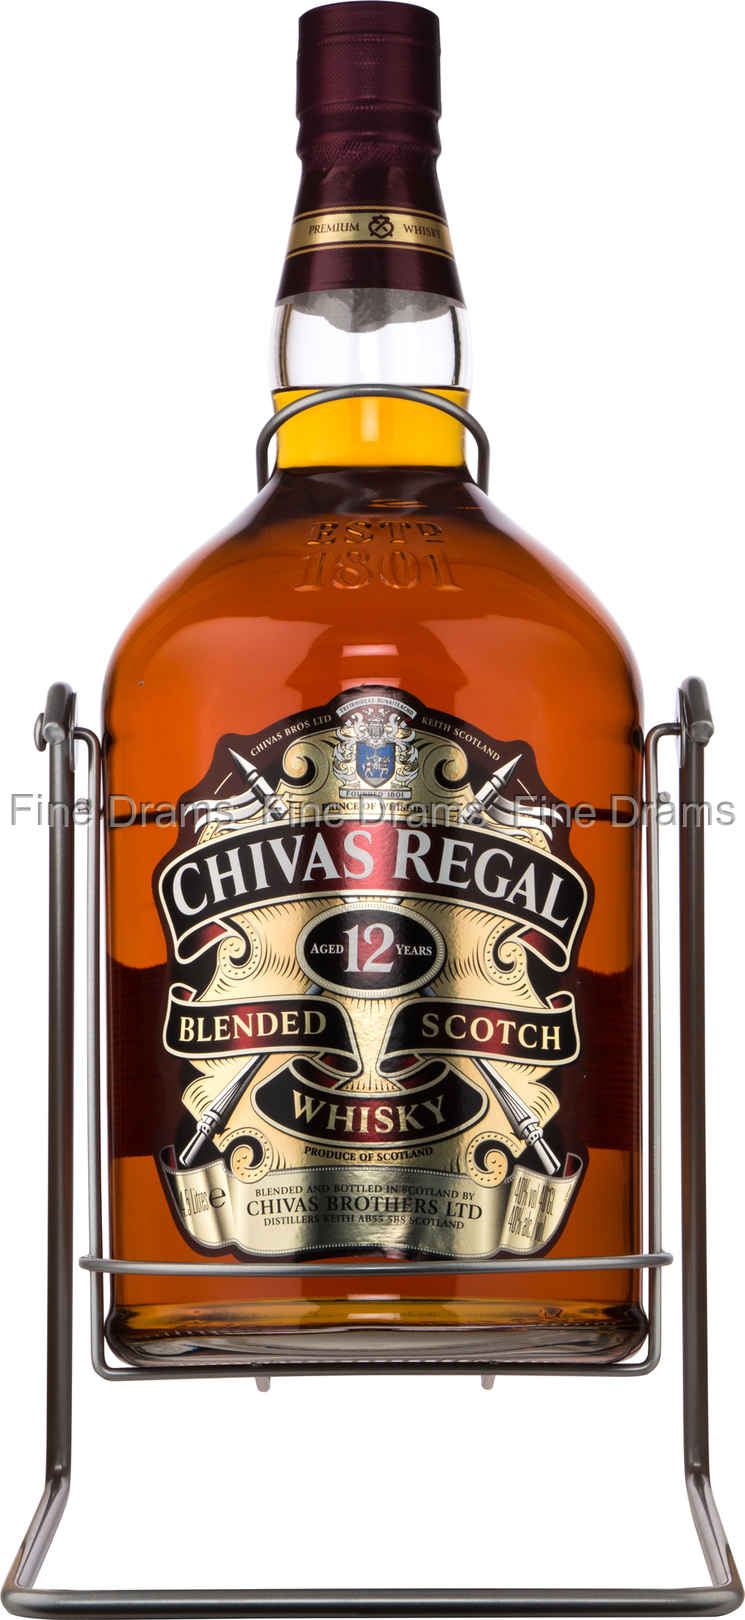 77676619a4a Chivas Regal 12 Year Old Whisky - 4.5 Liter